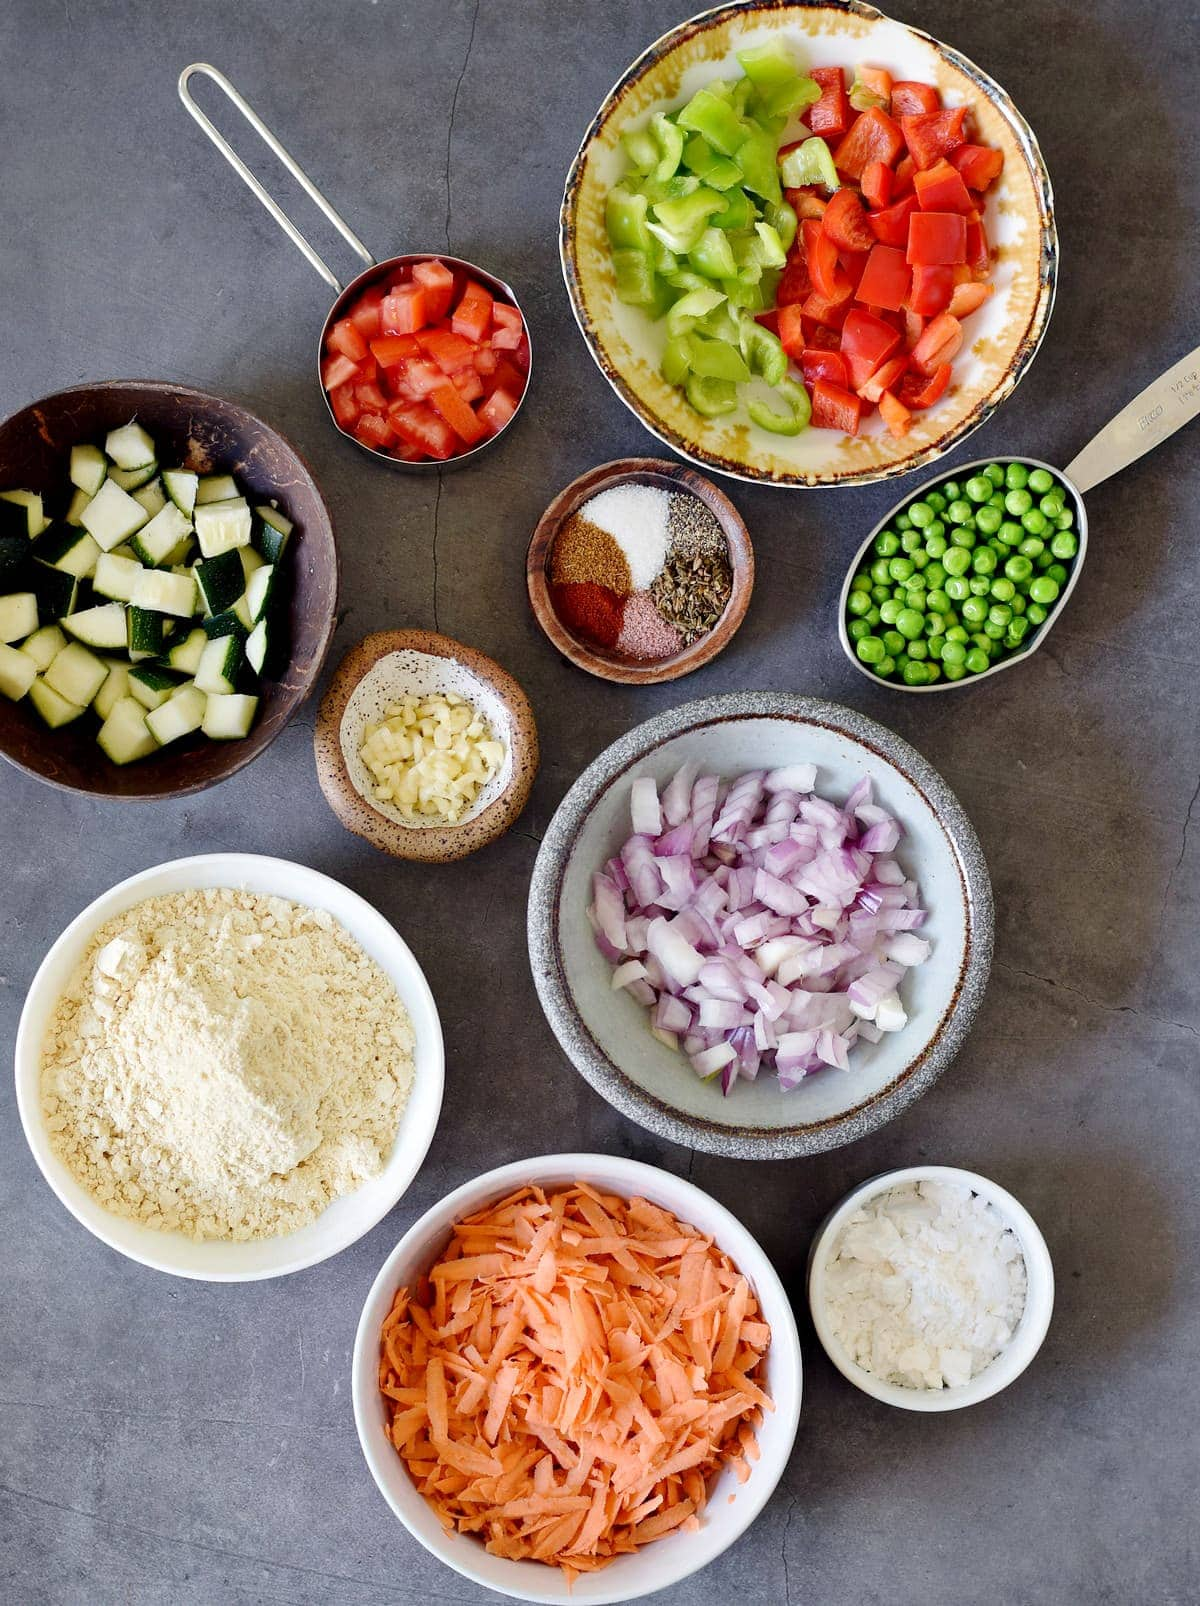 Ingredients used for veggie frittata